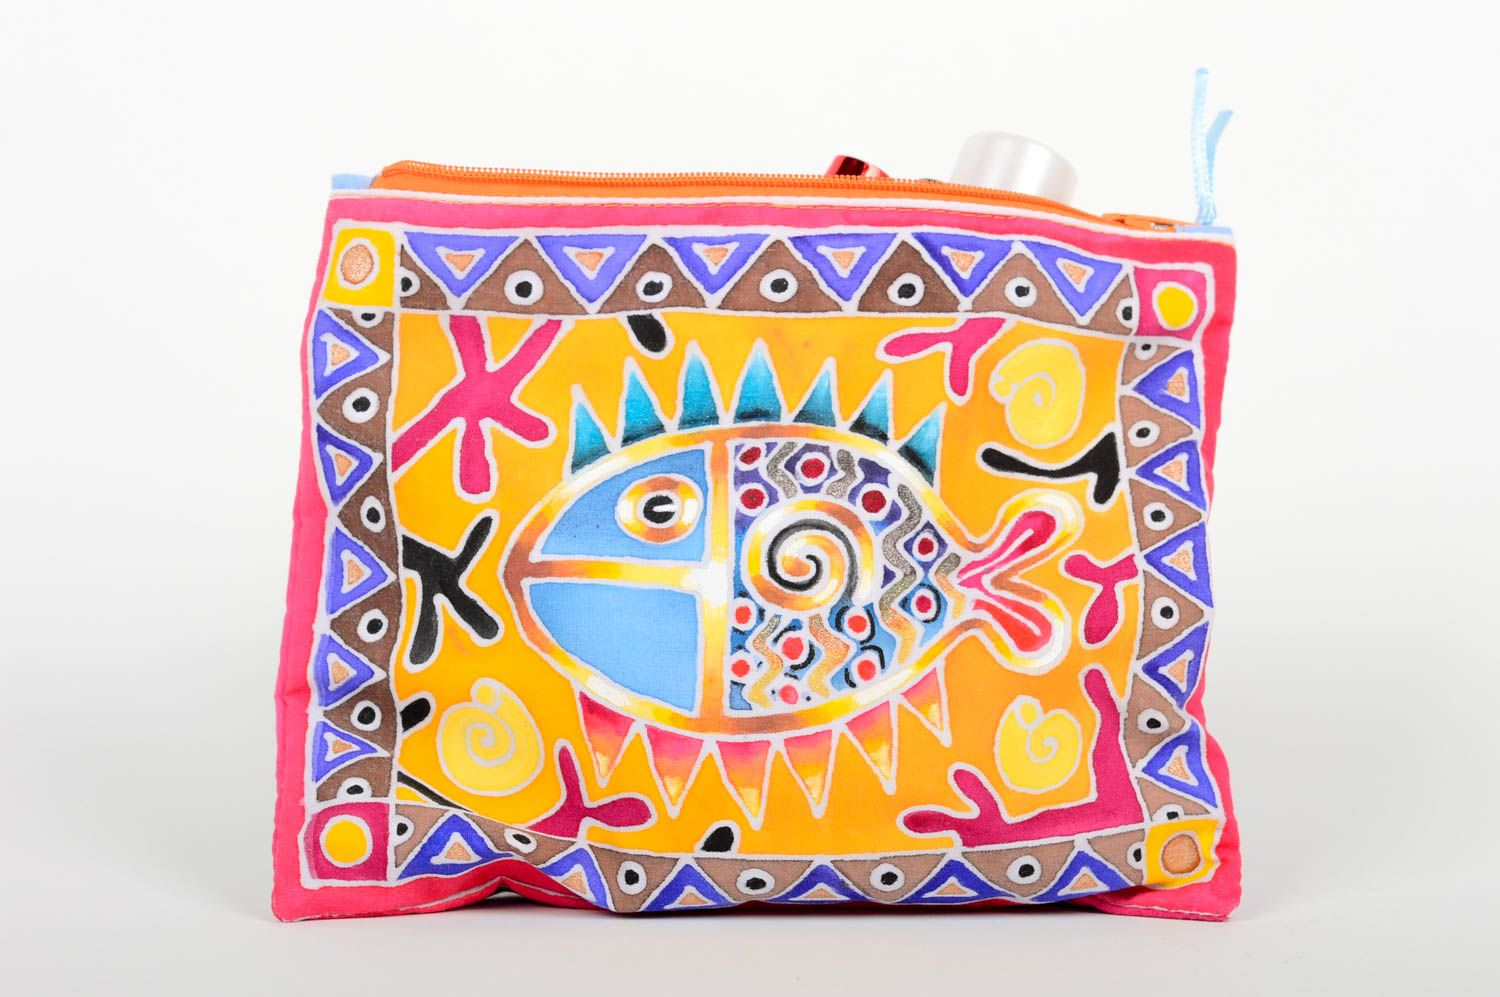 Beauty bags Cosmetic bags makeup bags train cases handmade women bag beautiful case - MADEheart.com